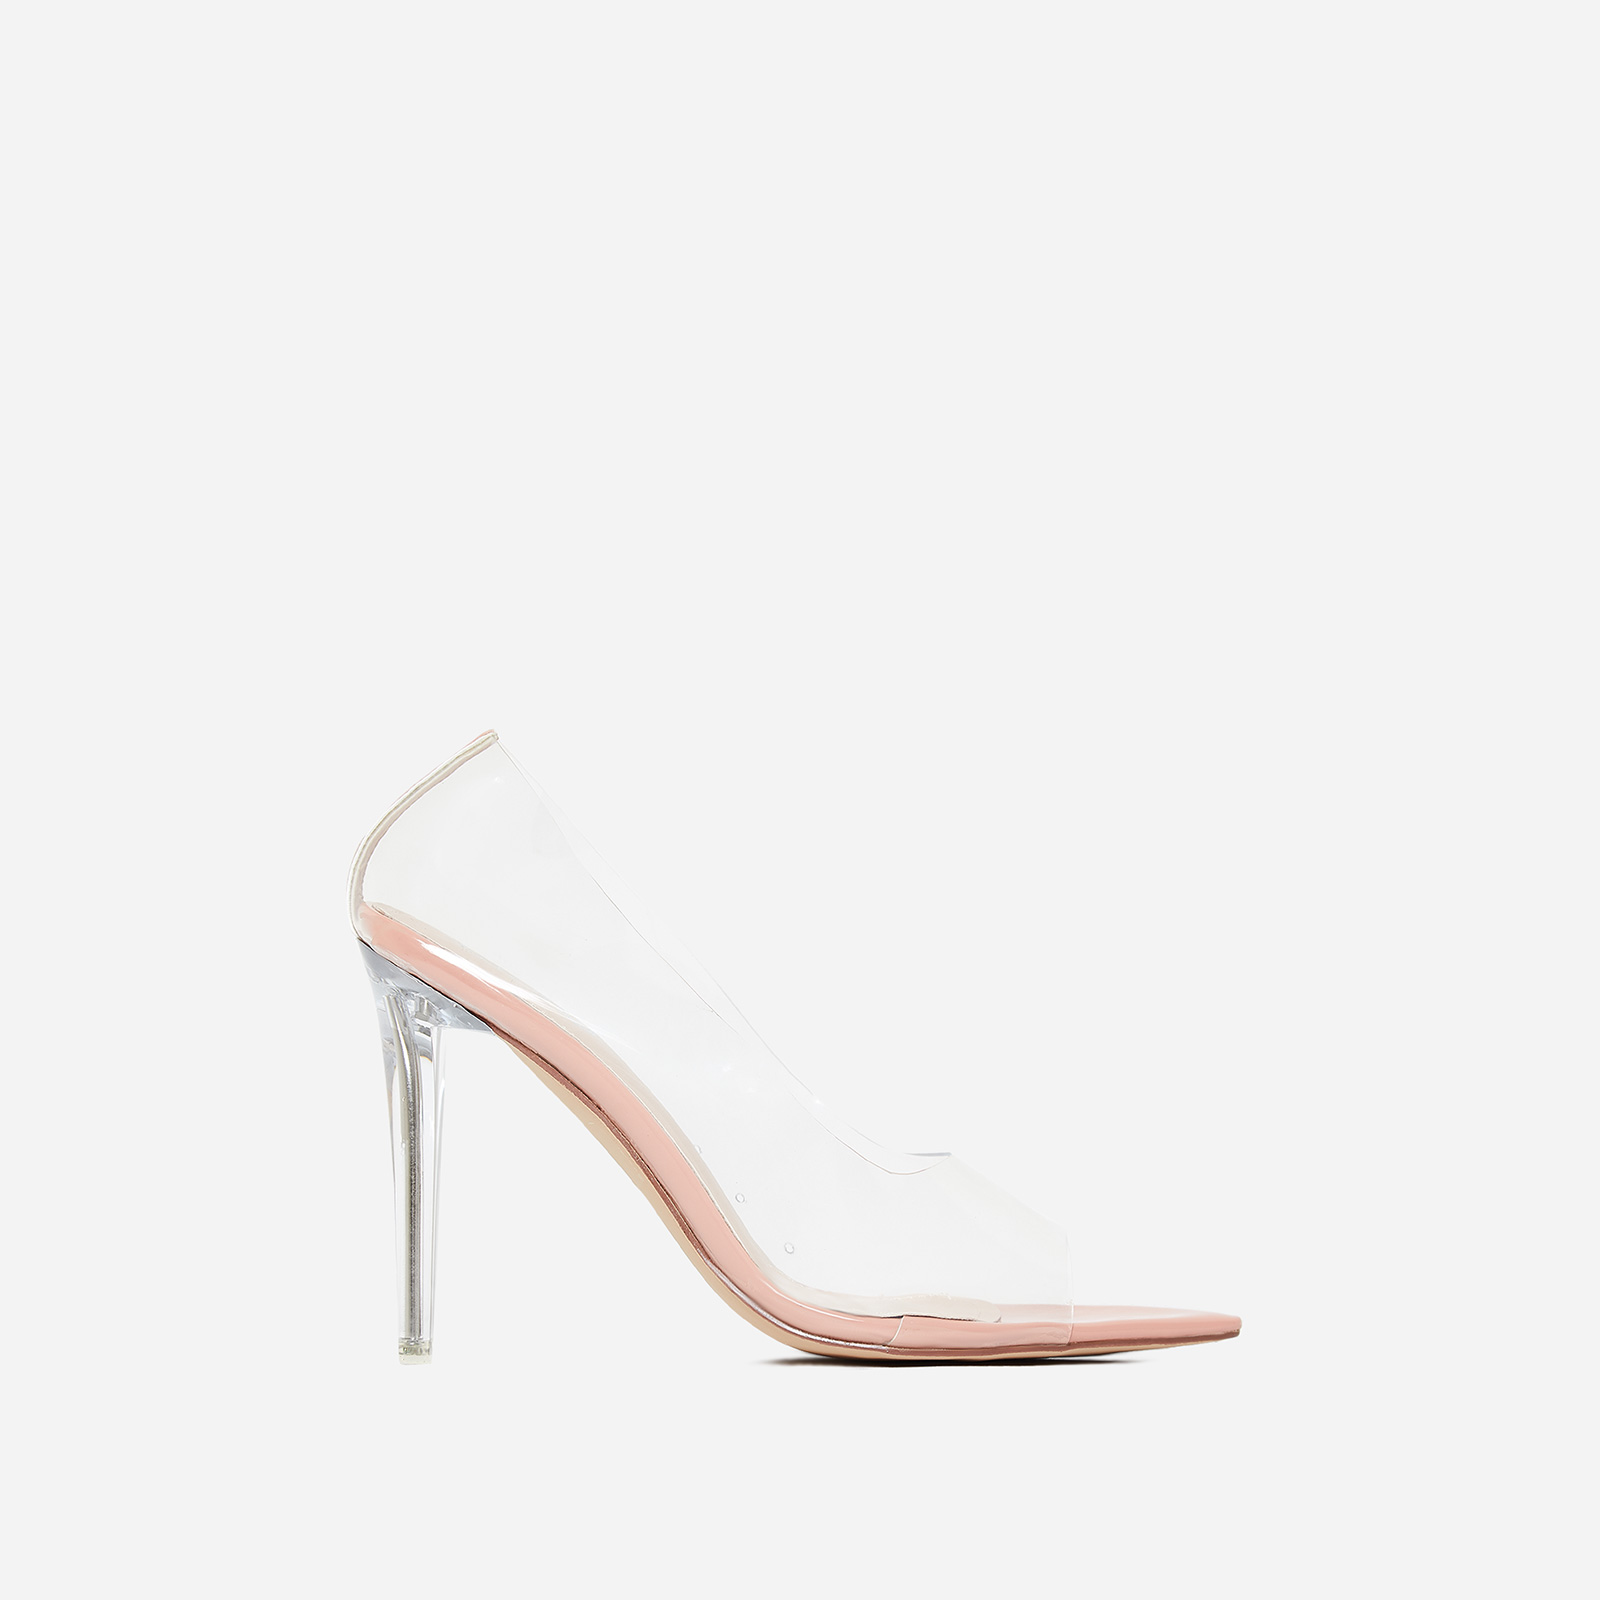 Ethereal Peep Toe Perspex Court Heel In Nude Patent